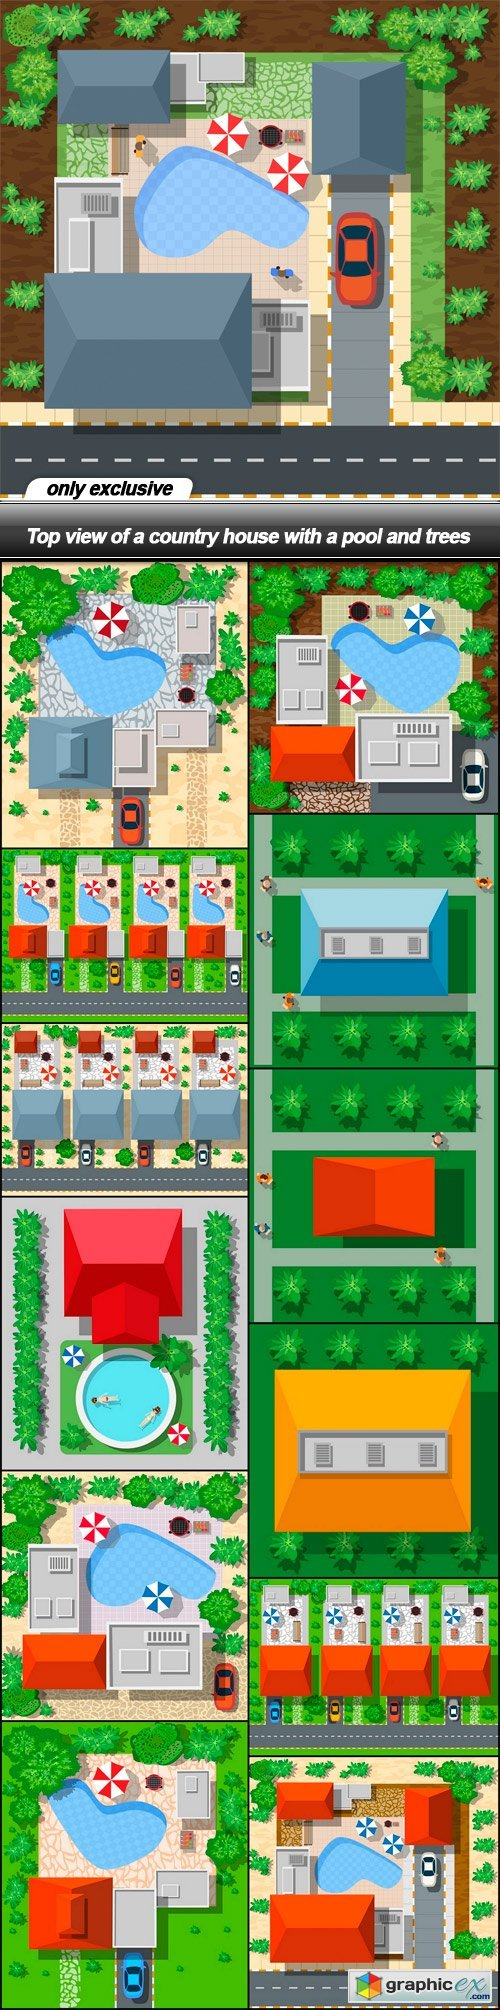 Top view of a country house with a pool and trees - 13 EPS